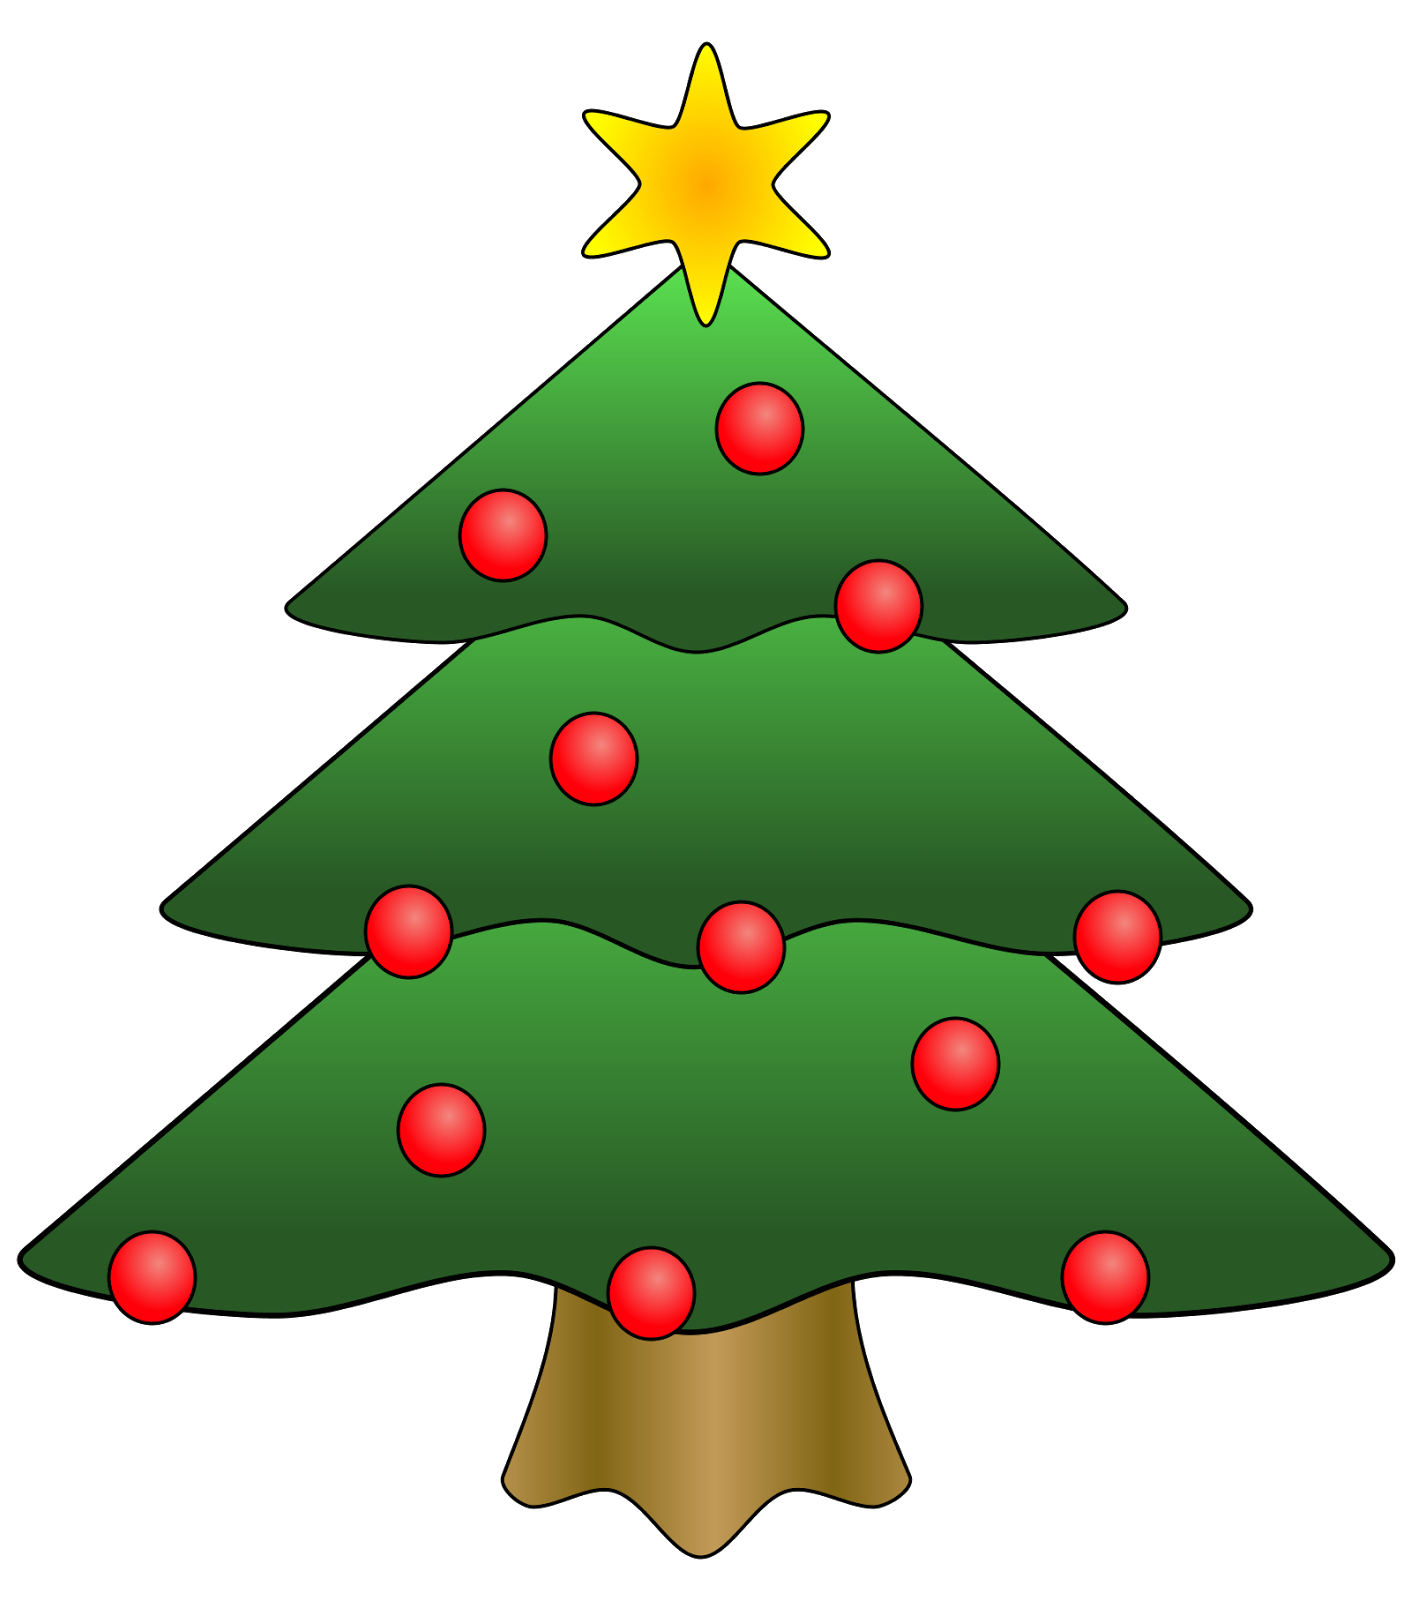 Pine tree outline clipart free clipart images